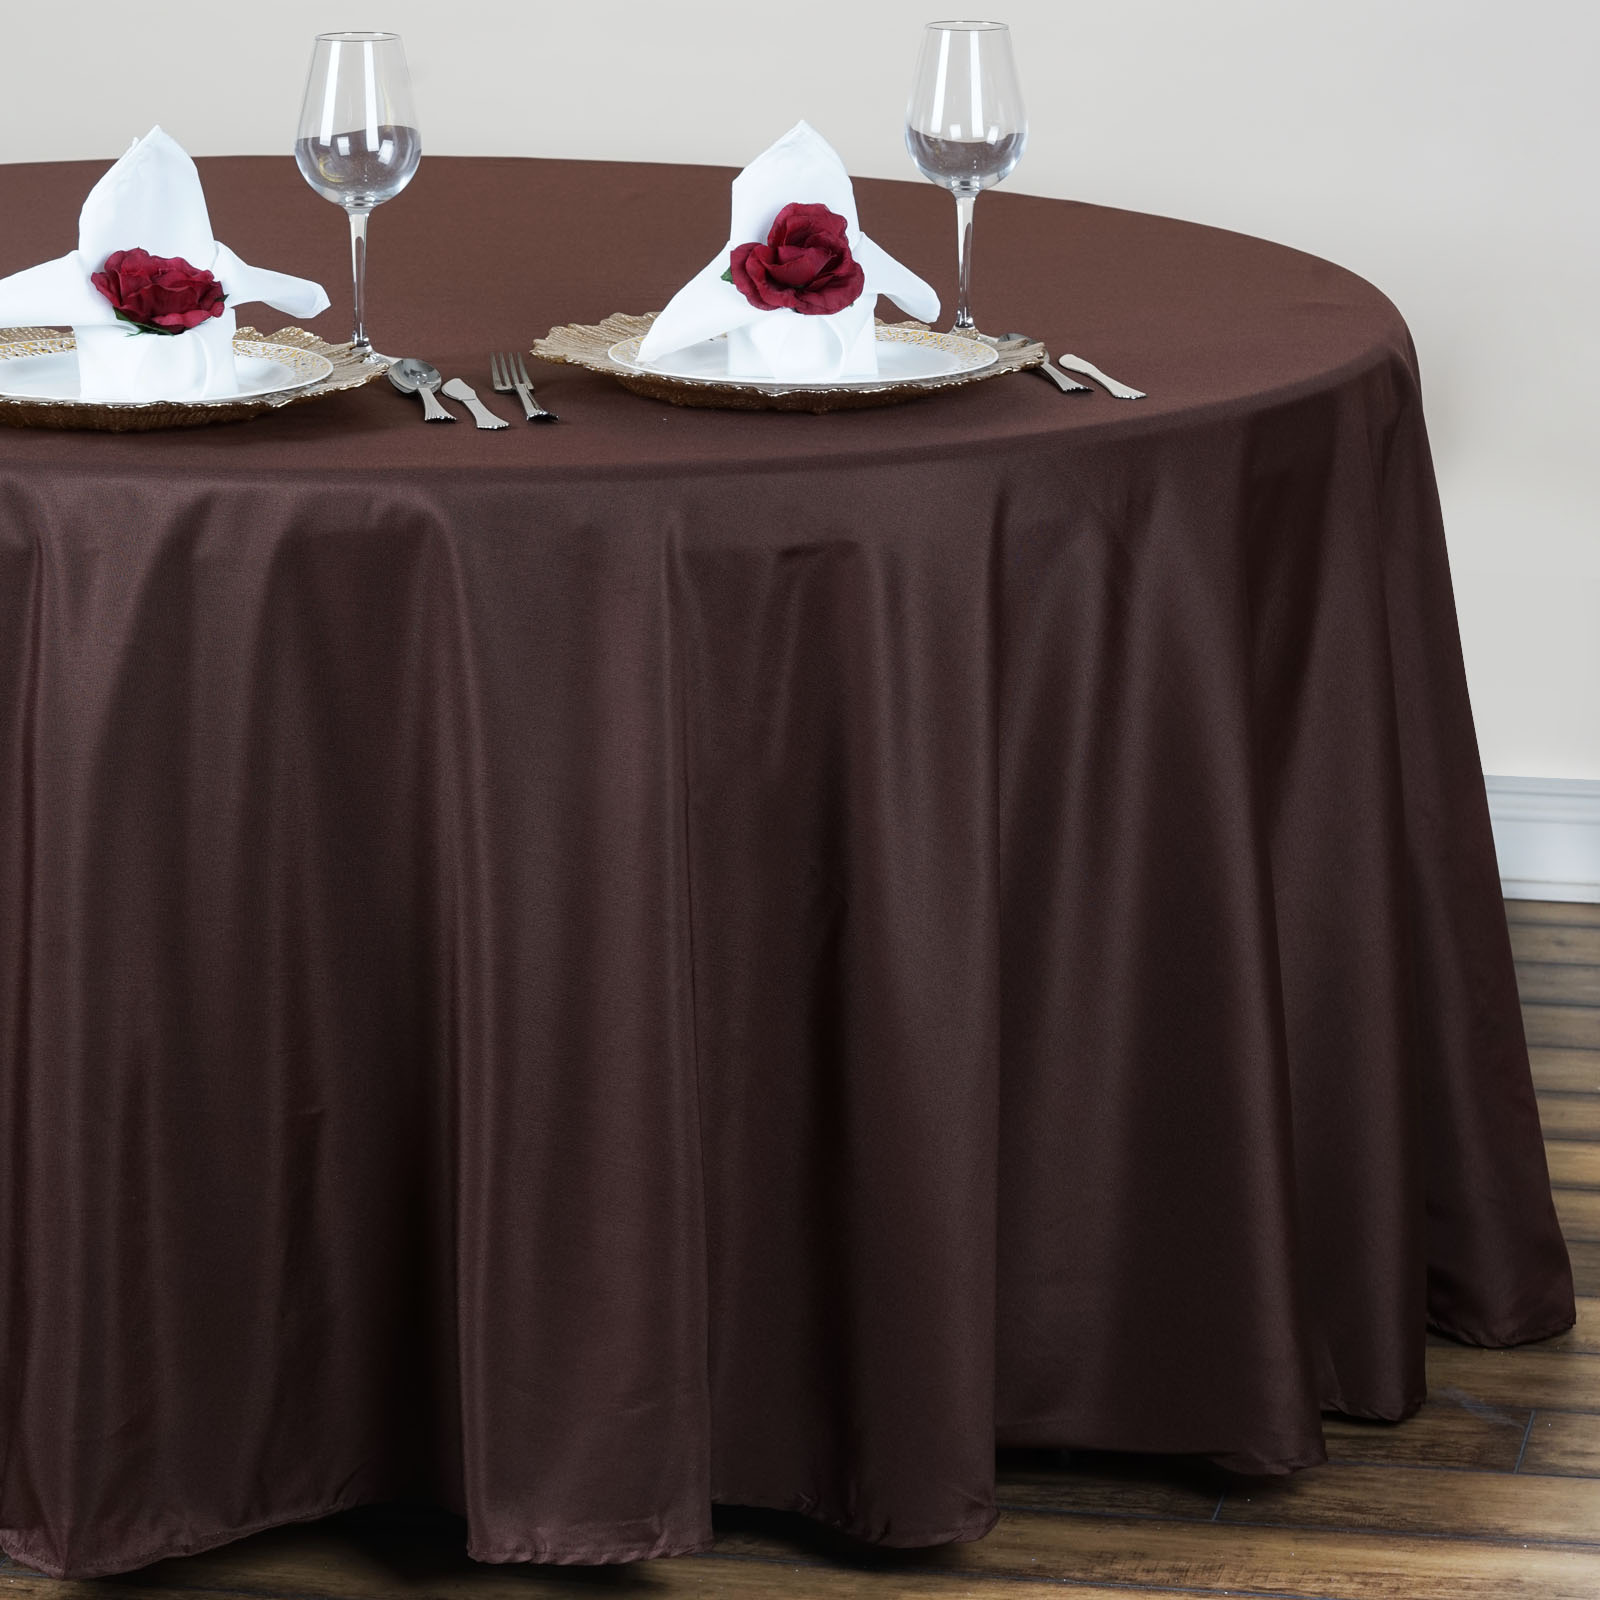 120 round polyester tablecloth wedding table linens decoration 120 034 round polyester tablecloth wedding table linens junglespirit